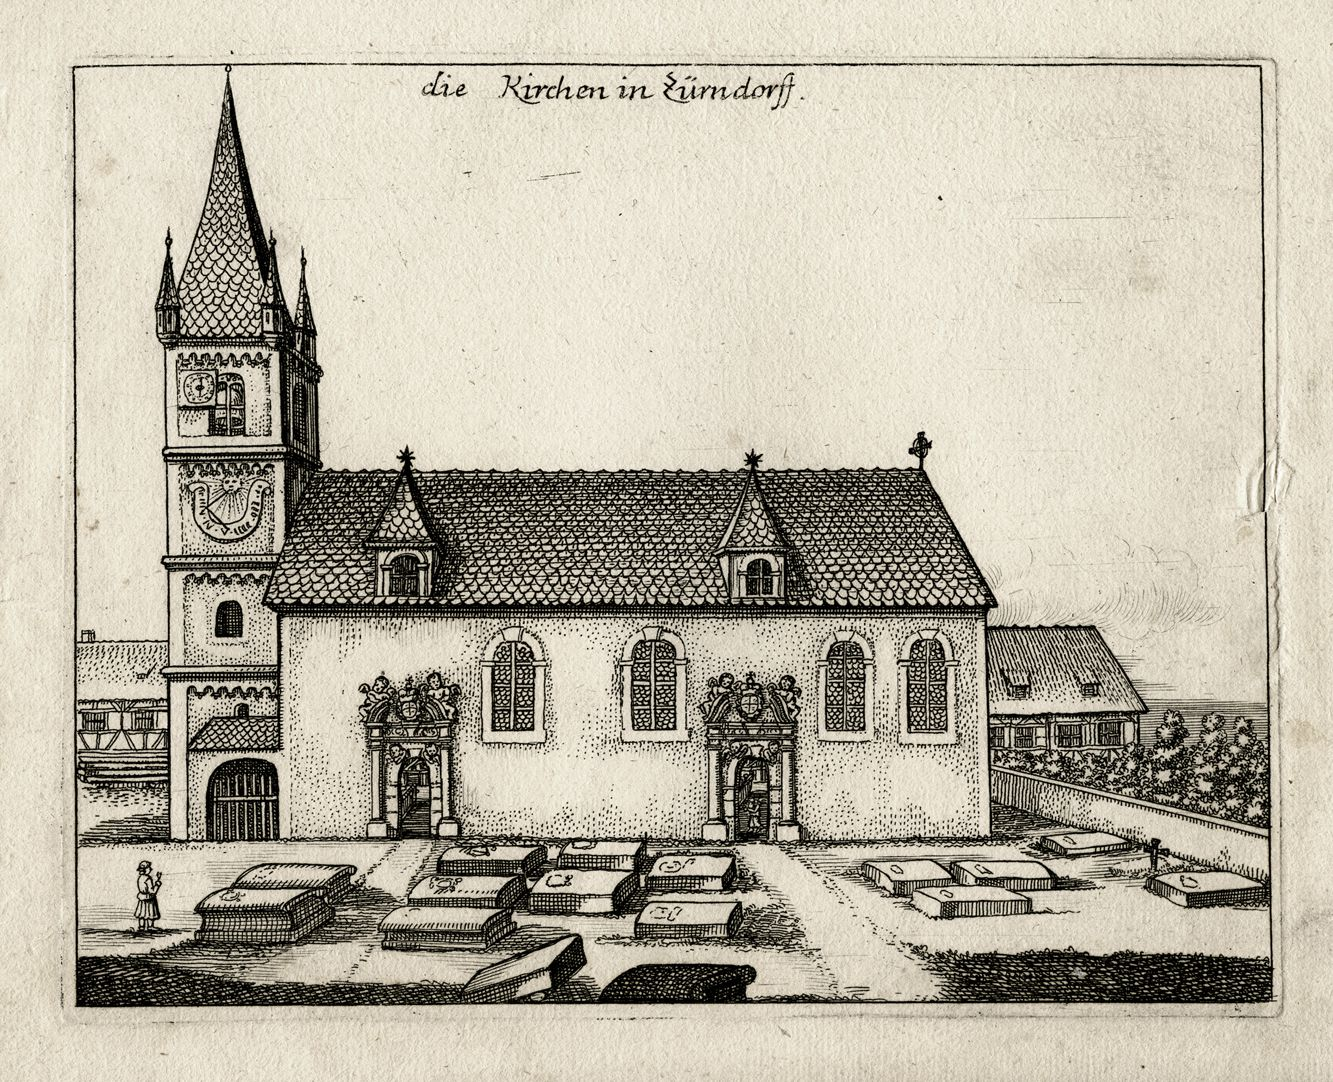 The Church in Zirndorf General view